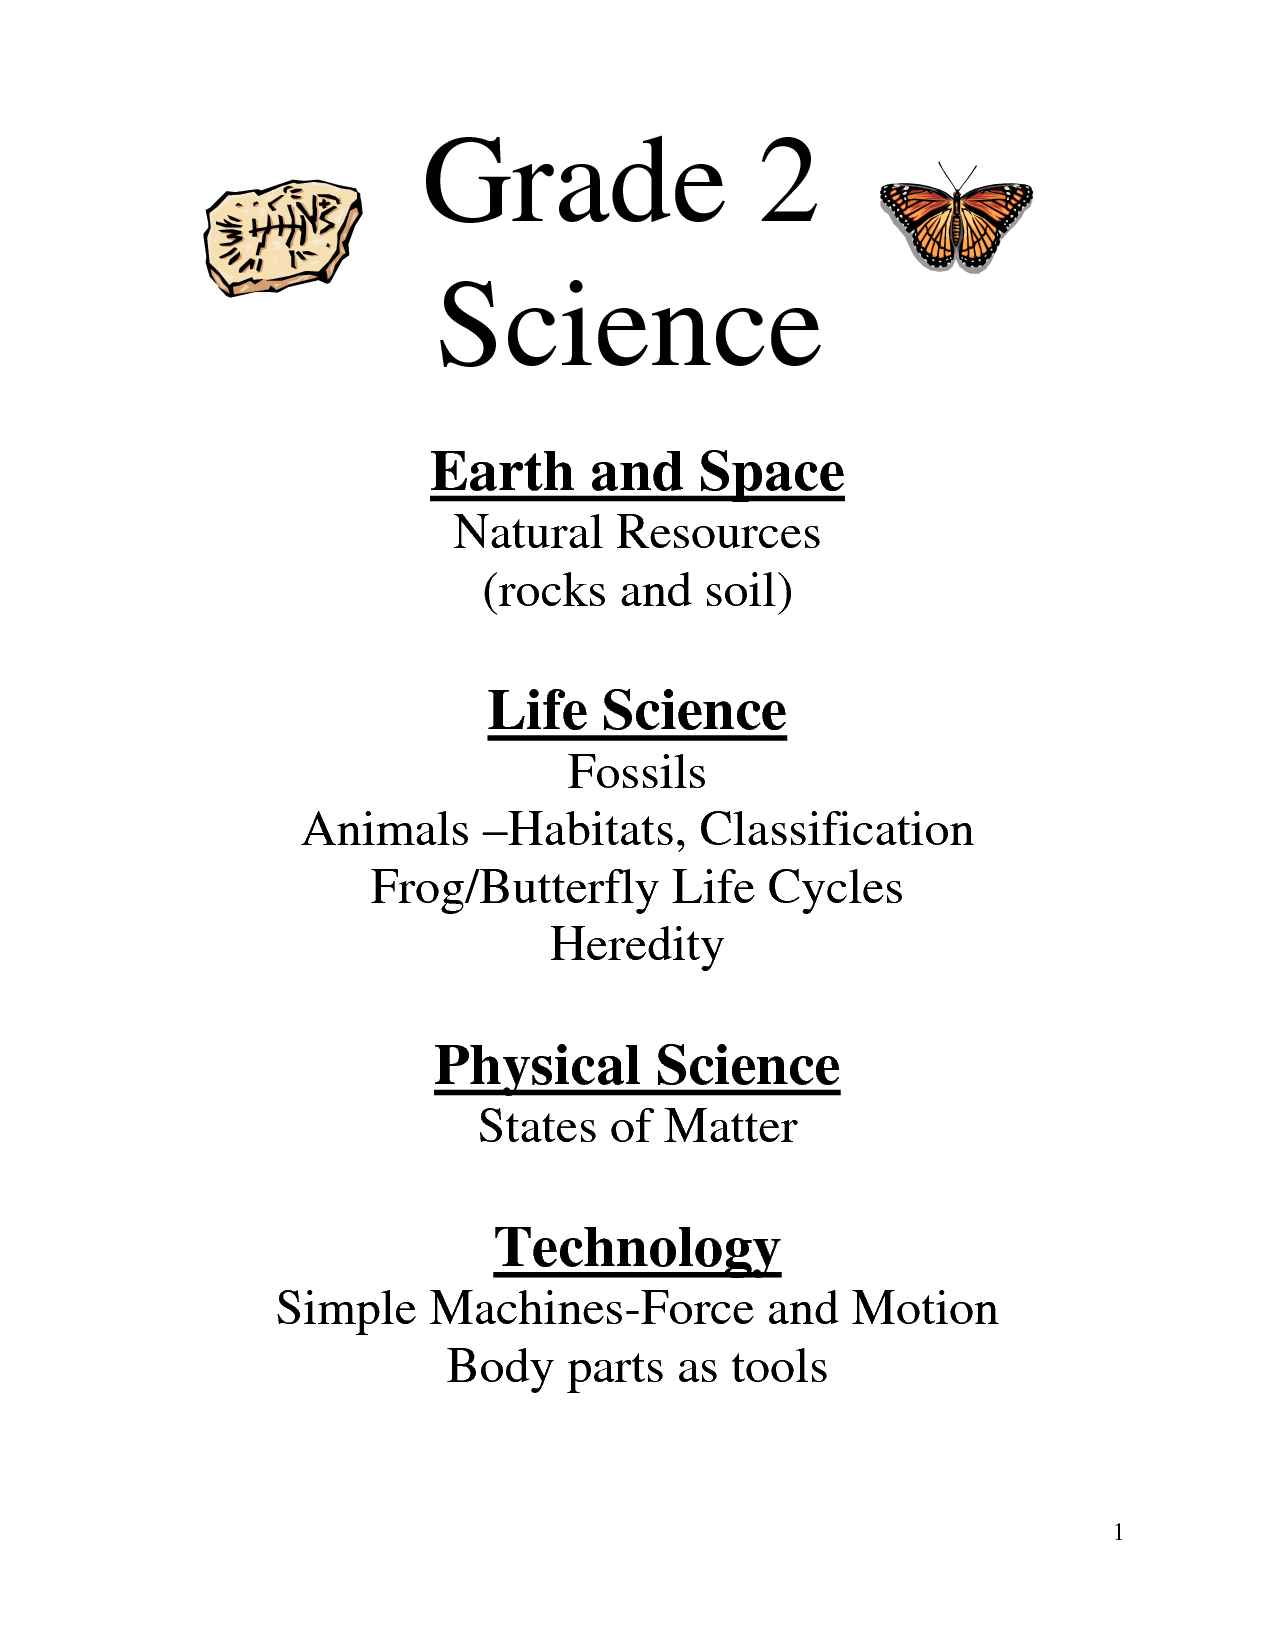 Worksheet Grade 2 Science